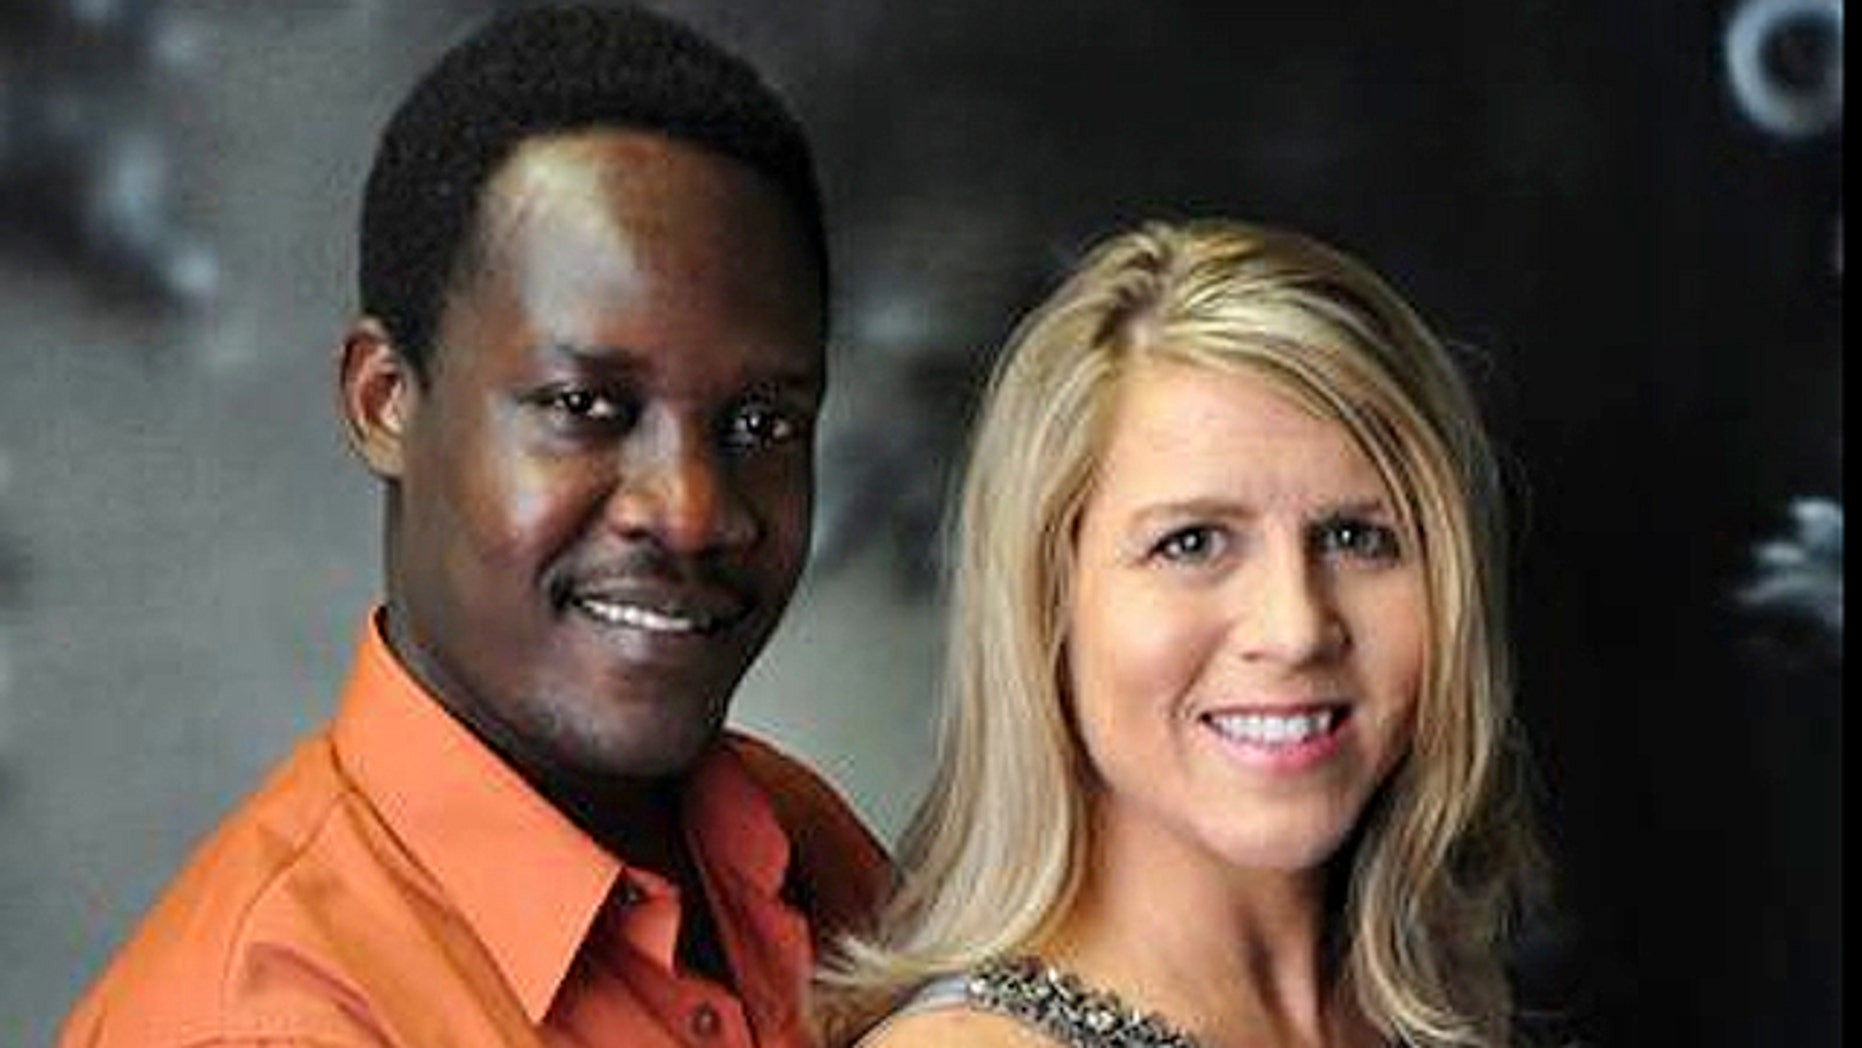 Rudwan Dawod, who had faced charges of terrorism and criminal organization, met his wife Nancy Williams while working as volunteers at Sudan Sunrise in 2009. They later married and the Oregon couple is now expecting their first child, whom they will name Sudan, in September. (Courtesy: Sudan Sunrise)